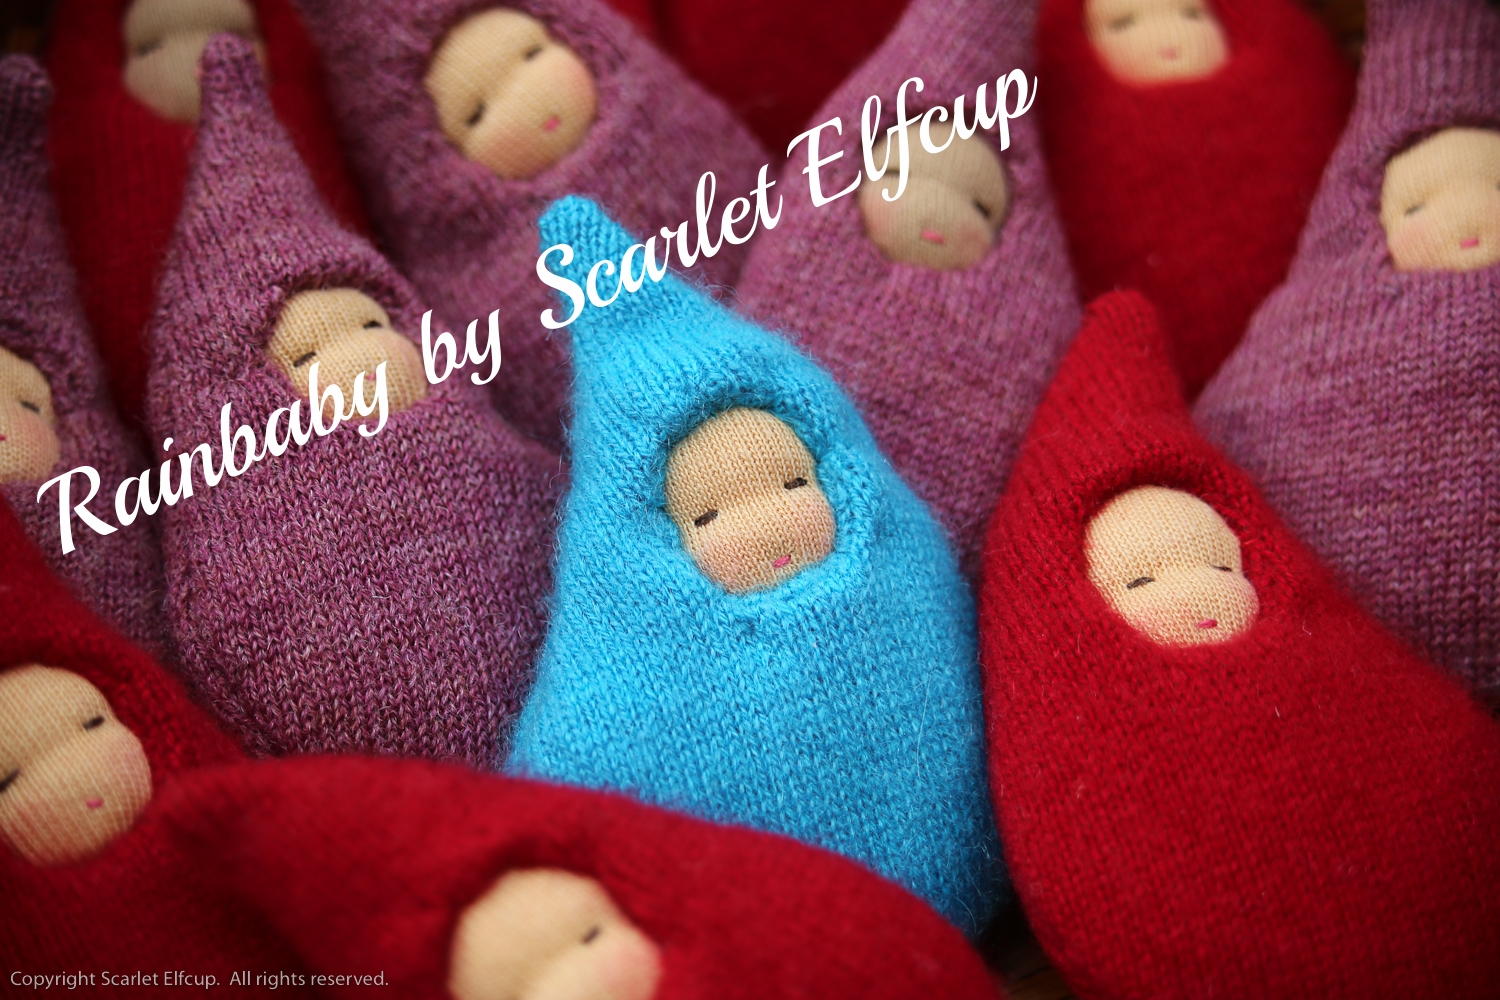 The Rainbaby was Scarlet Elfcup's very first creation. Read more about the inspiration behind this Scarlet Elfcup mascot  here .